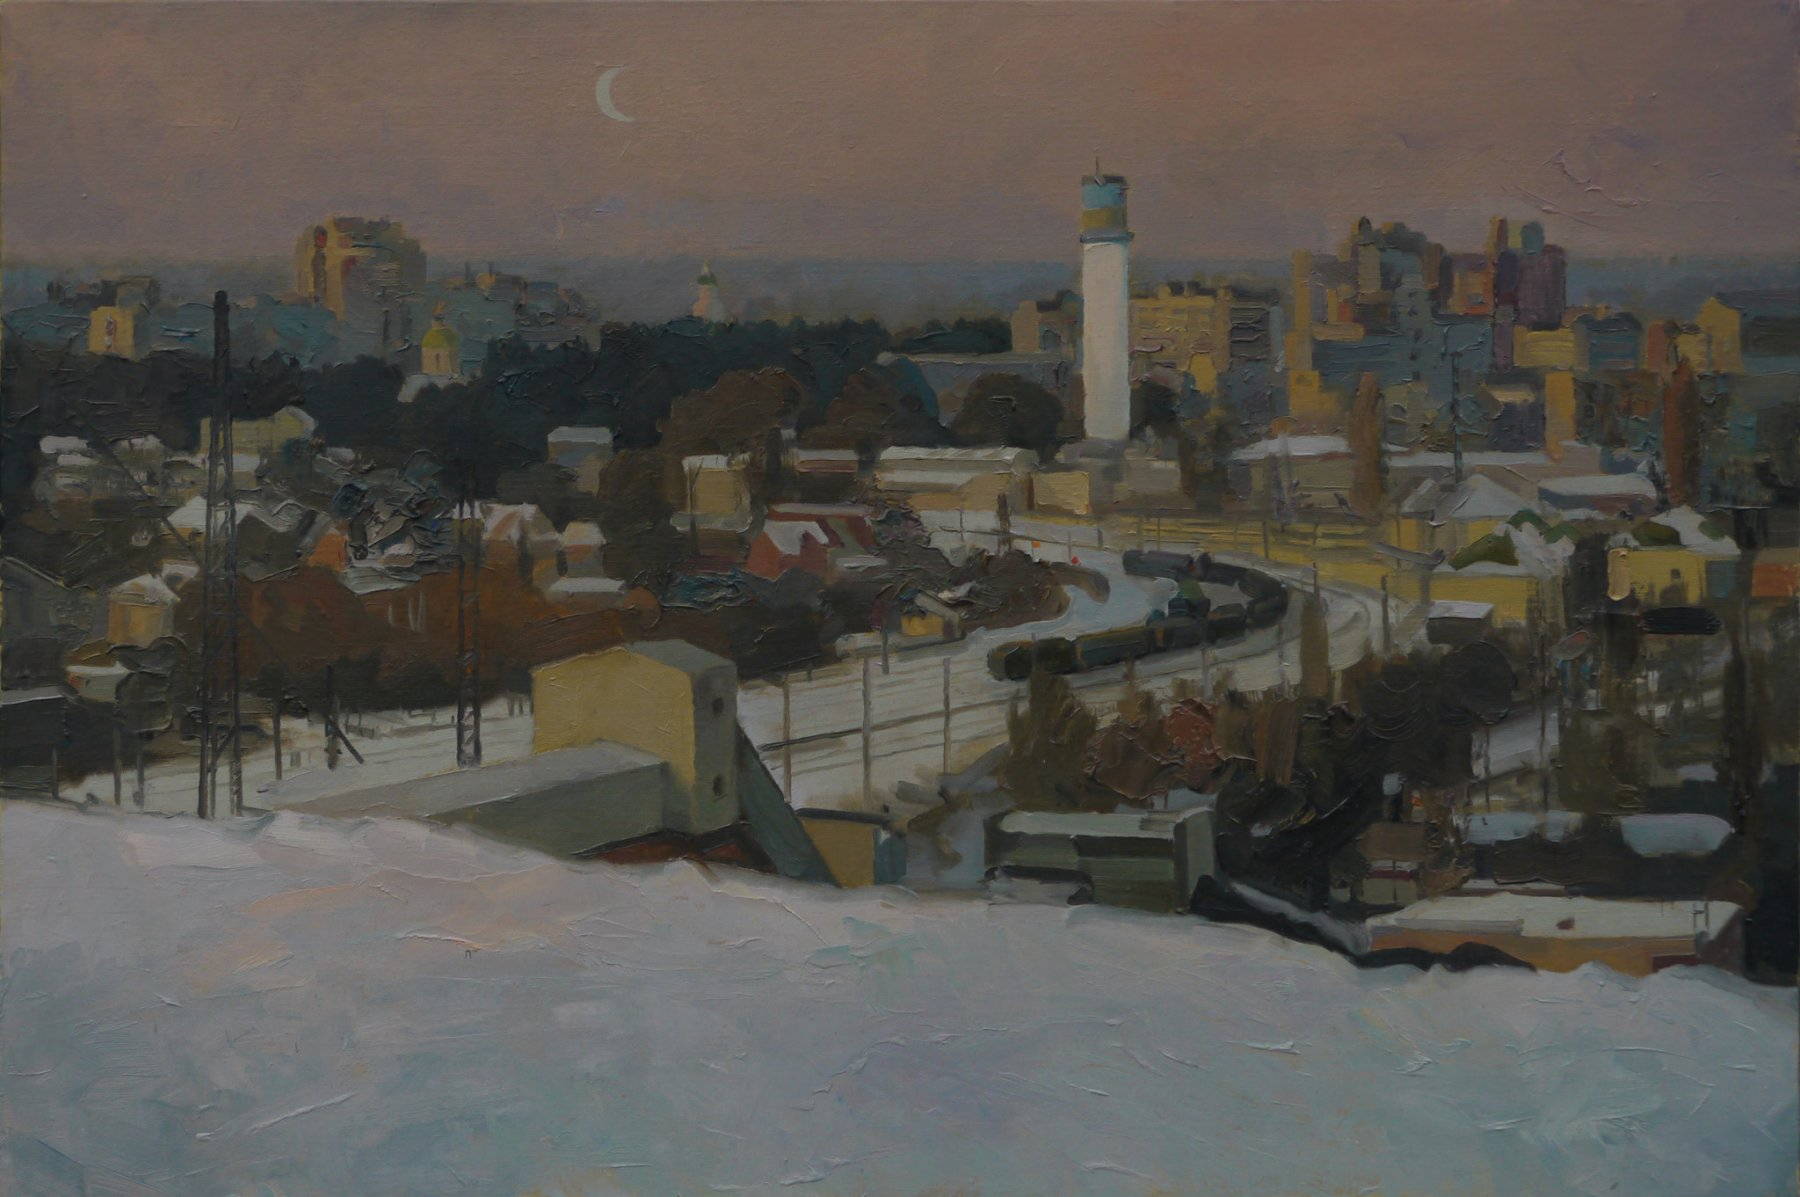 Evening in Ukrainka - Victor Onyshchenko